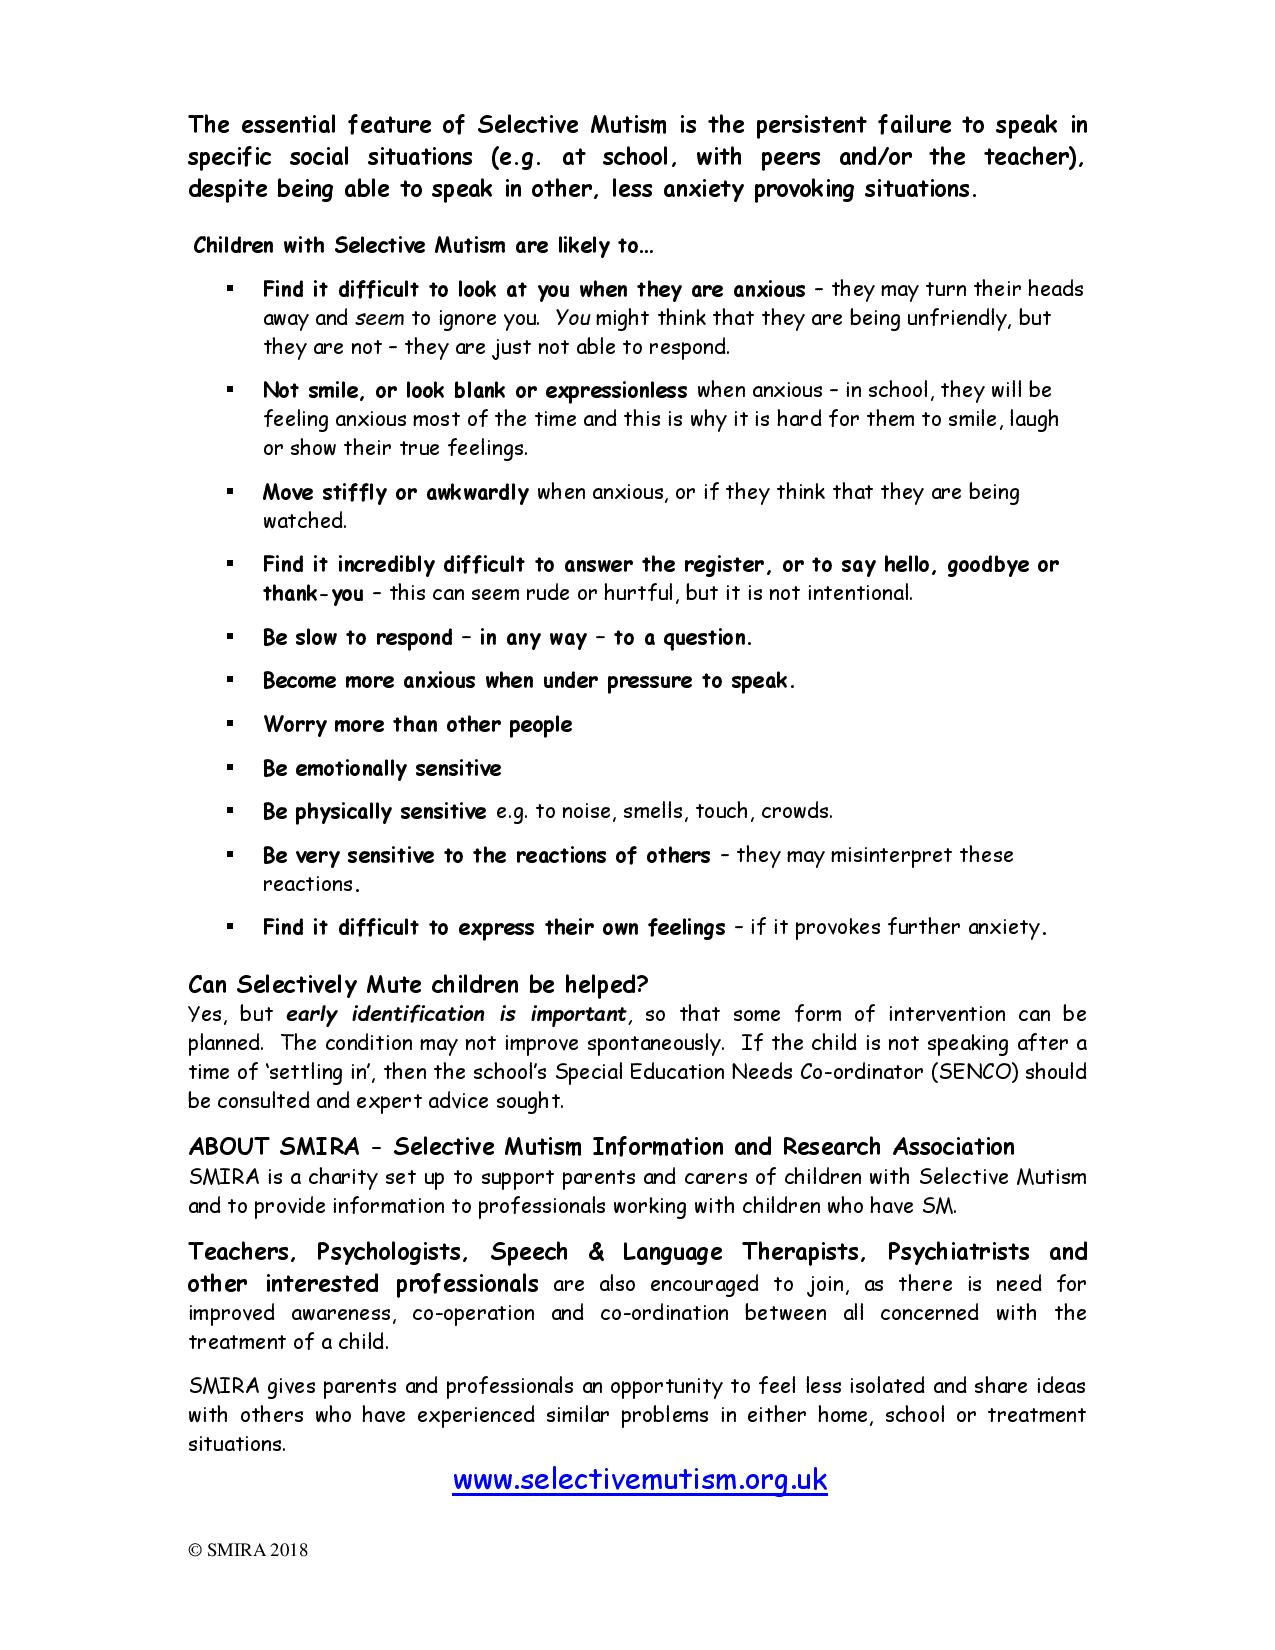 selective mutism awareness leaflet page 2